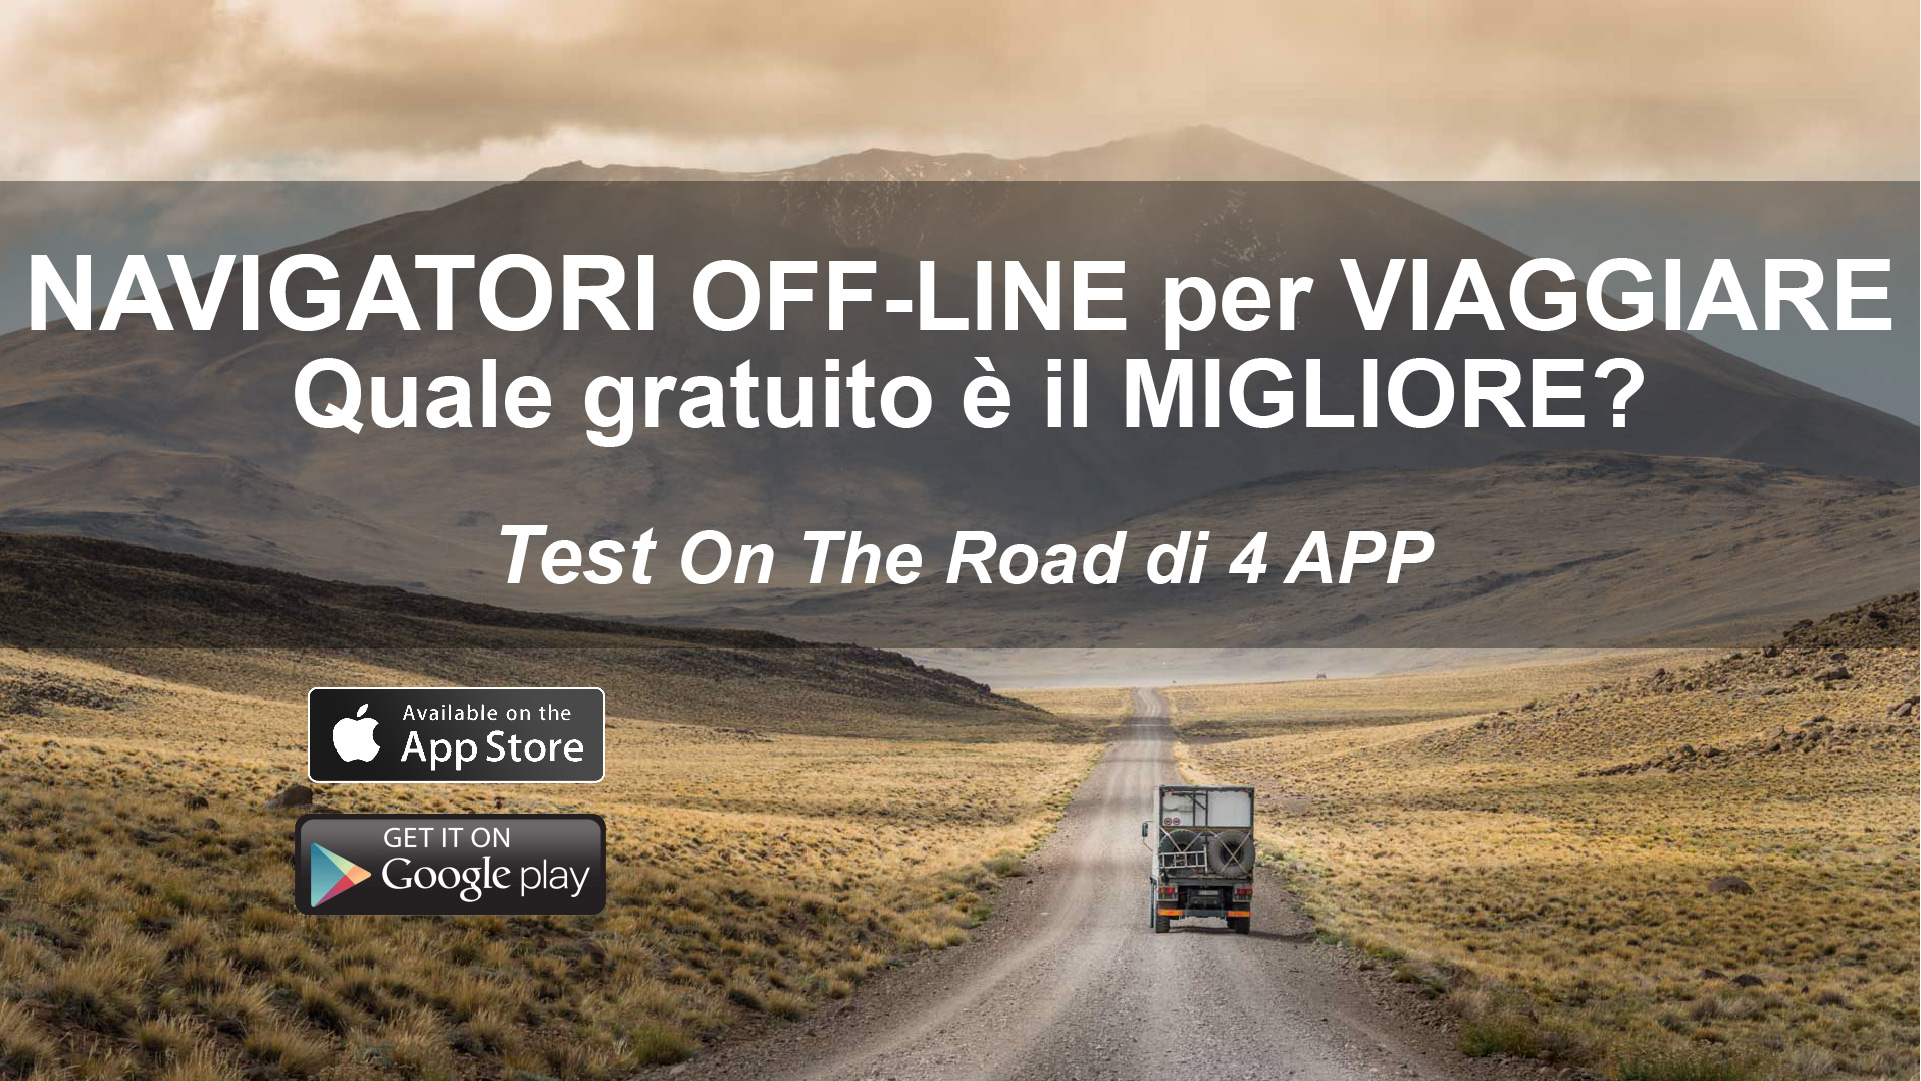 Off-line navigators to travel, which free is the best